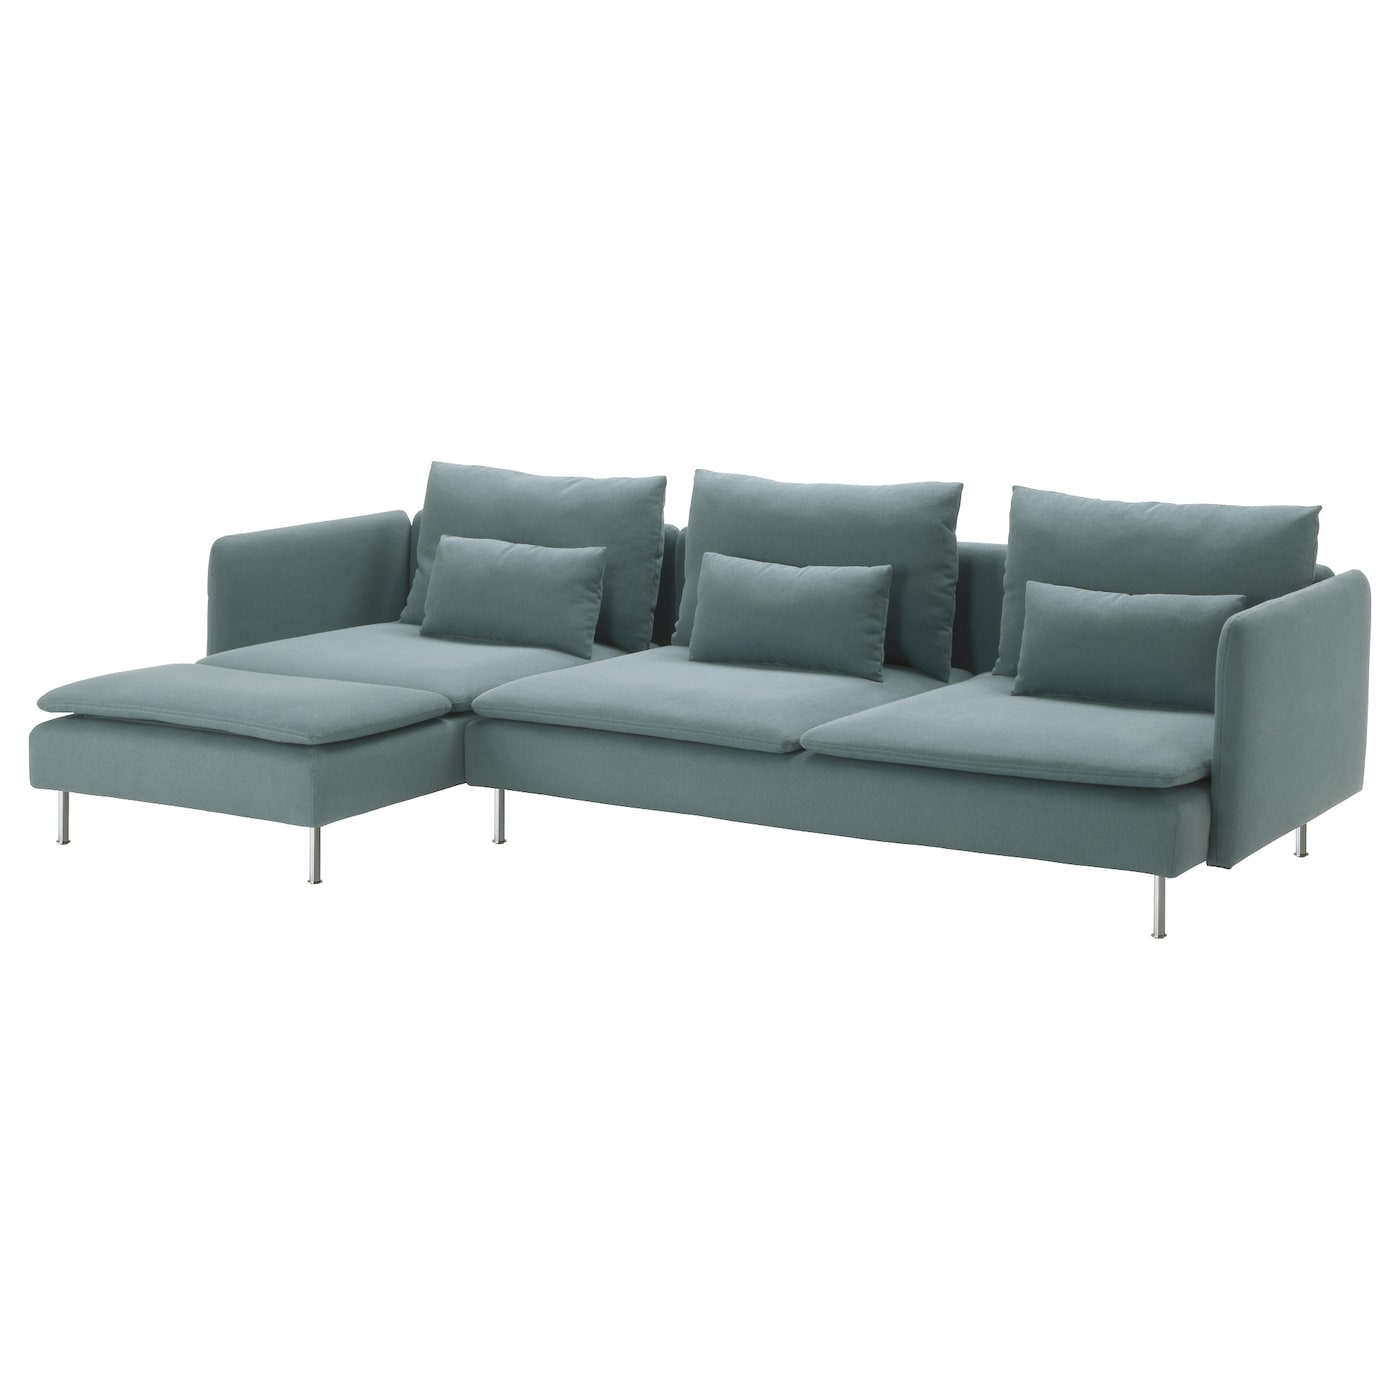 s derhamn three seat sofa and chaise longue finnsta turquoise ikea. Black Bedroom Furniture Sets. Home Design Ideas